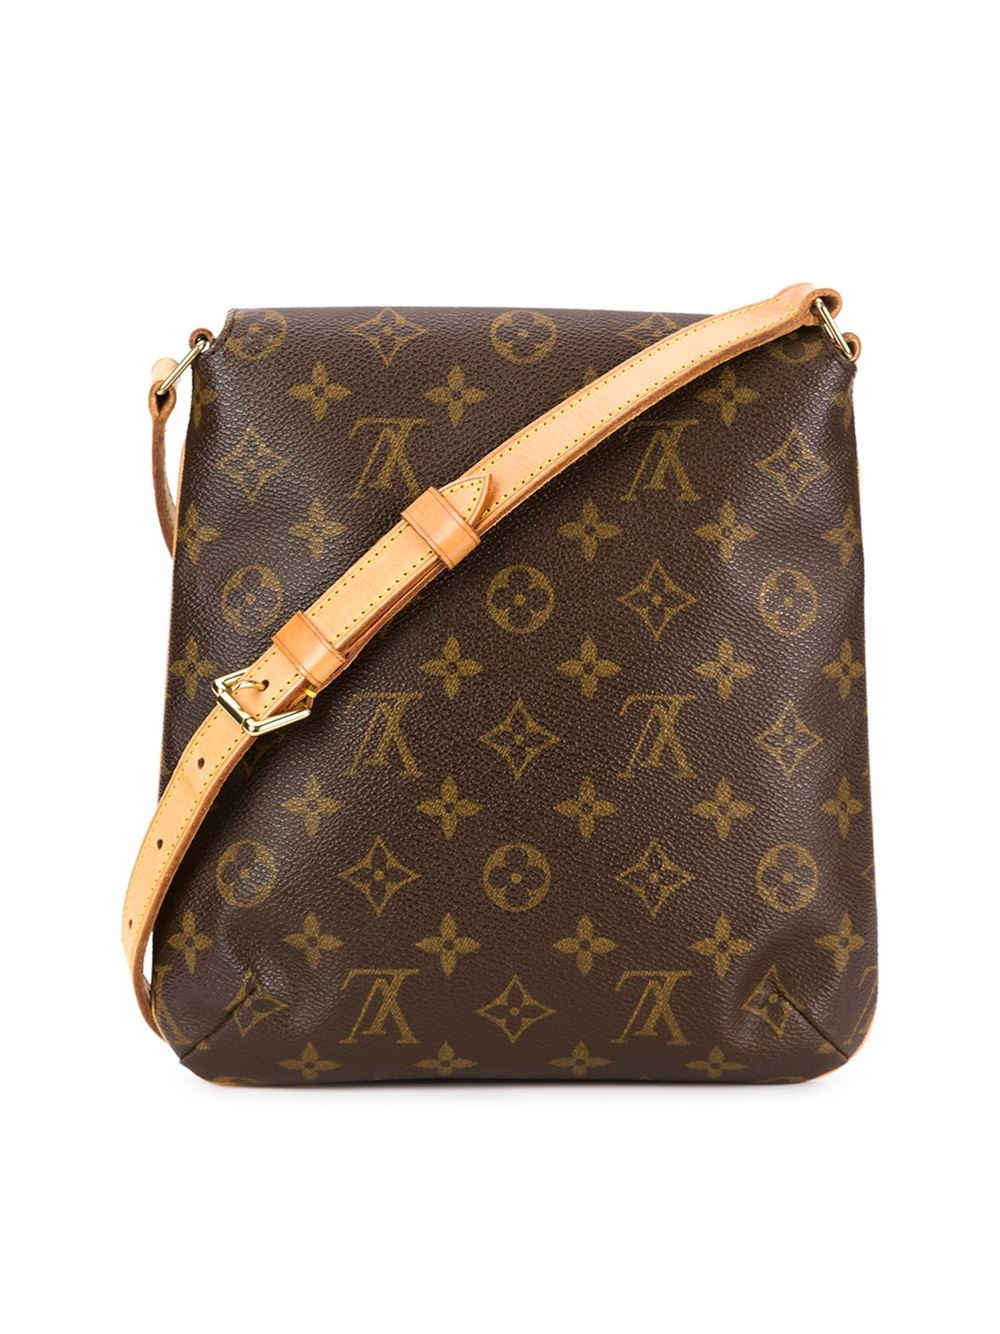 louis vuitton 39 musette salsa 39 shoulder bag in multicolor brown lyst. Black Bedroom Furniture Sets. Home Design Ideas